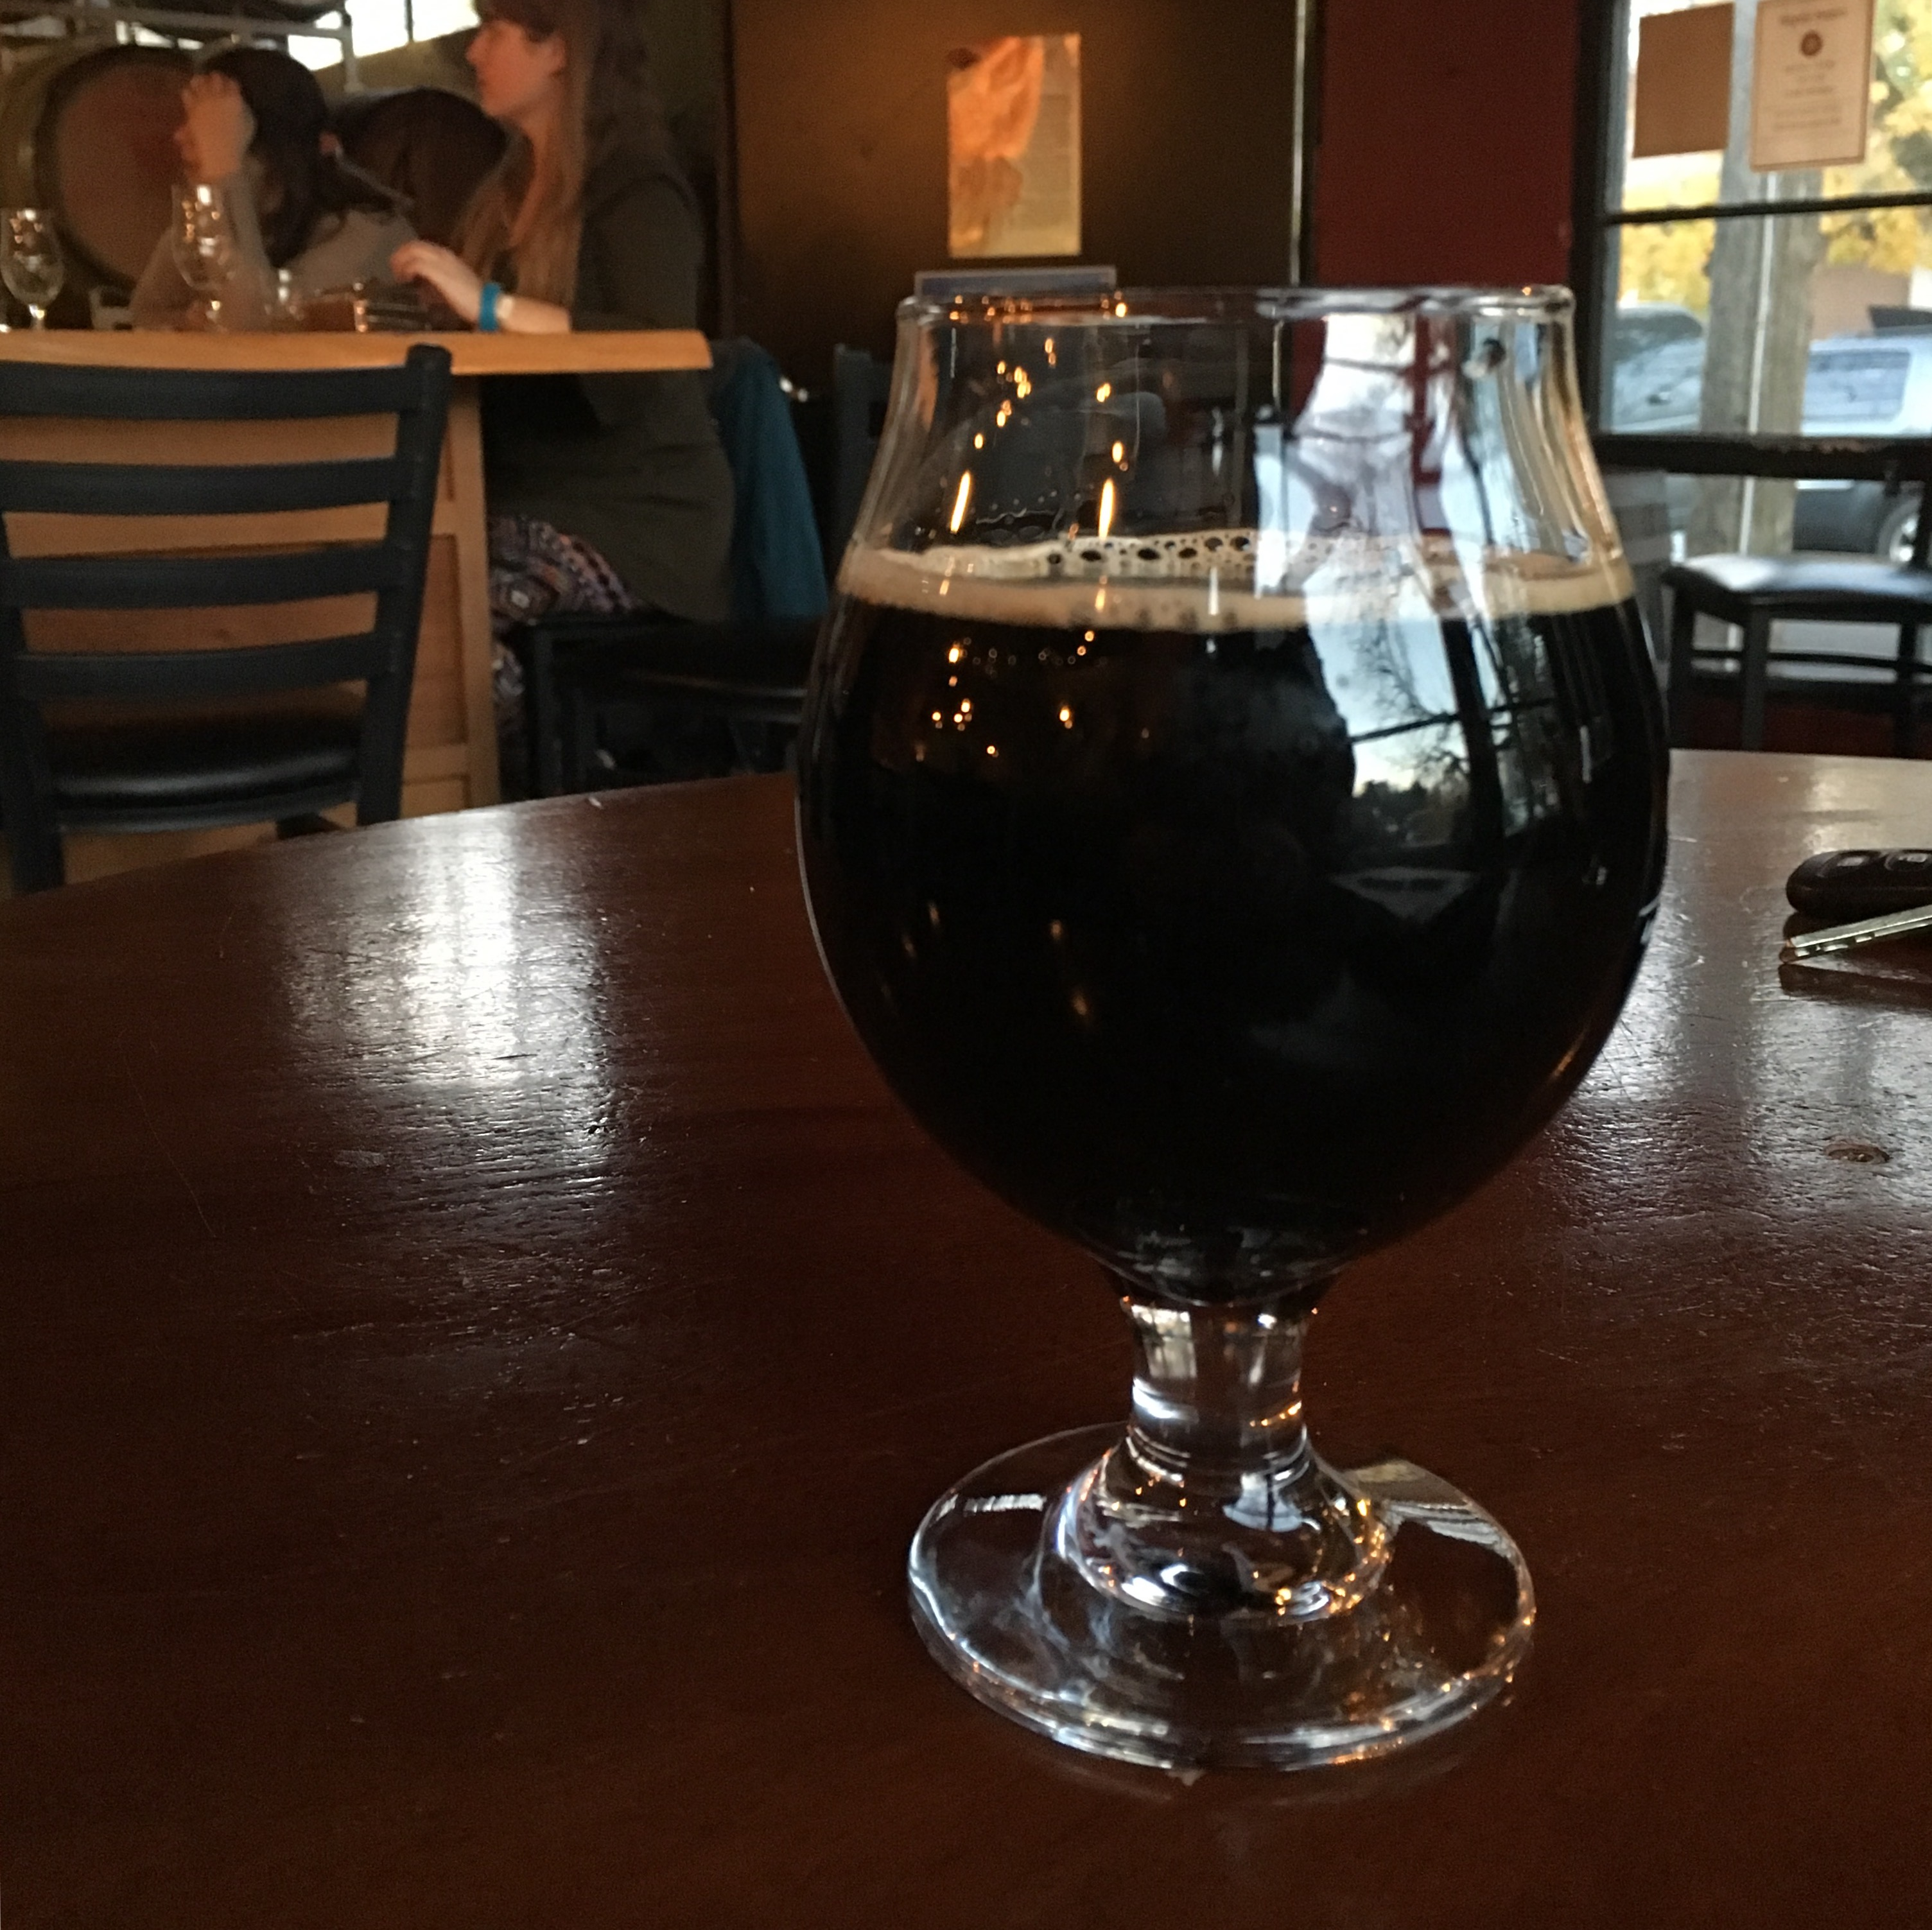 Culmination Brewing will release 2016 Multnomah County Stout on Monday, November 28th.